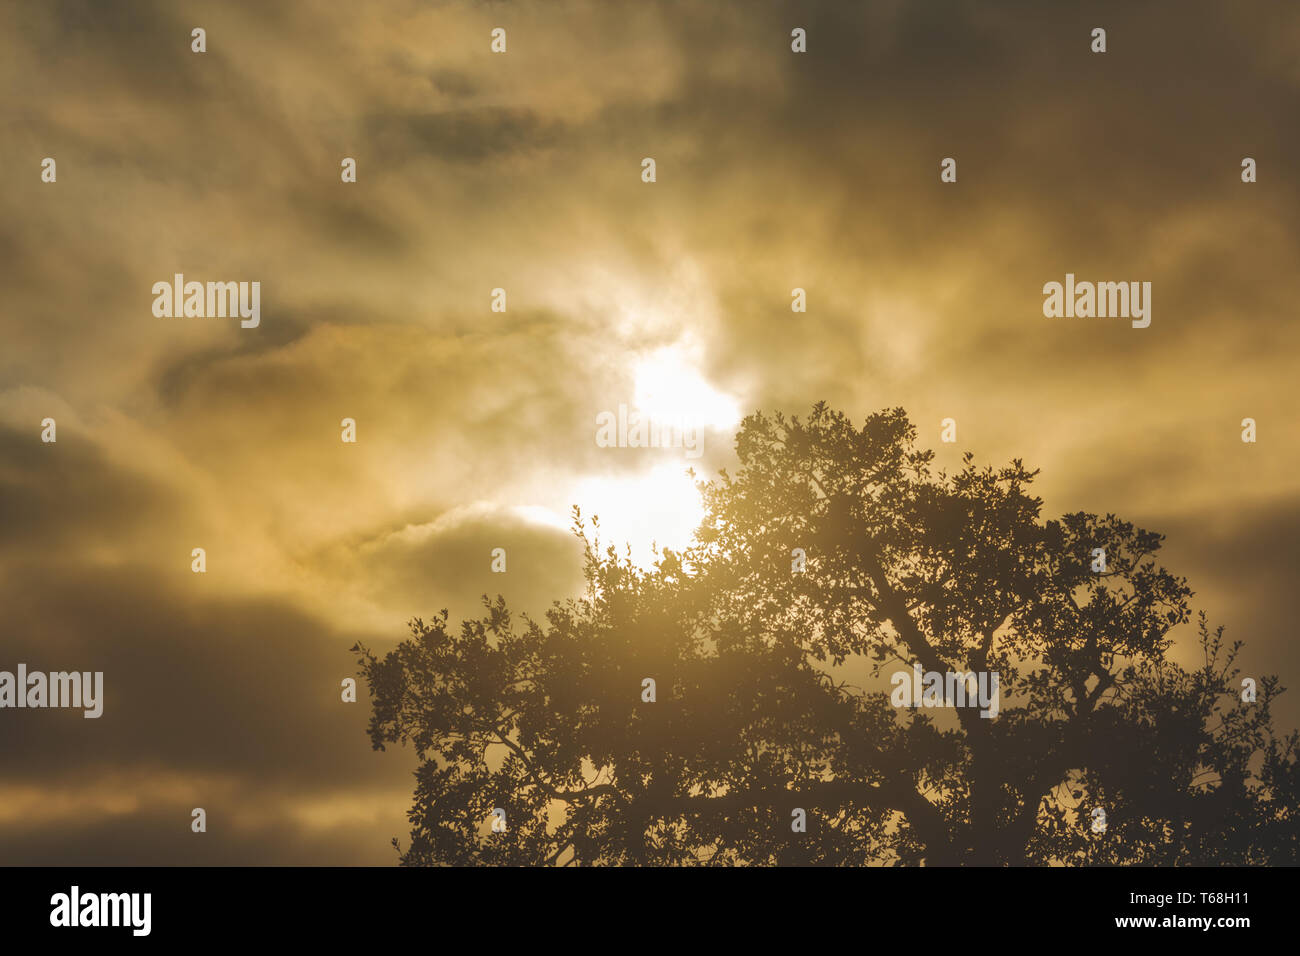 The sun behind the clouds and the crown of the cork tree in silhouette in odemira, Portugal - Stock Image